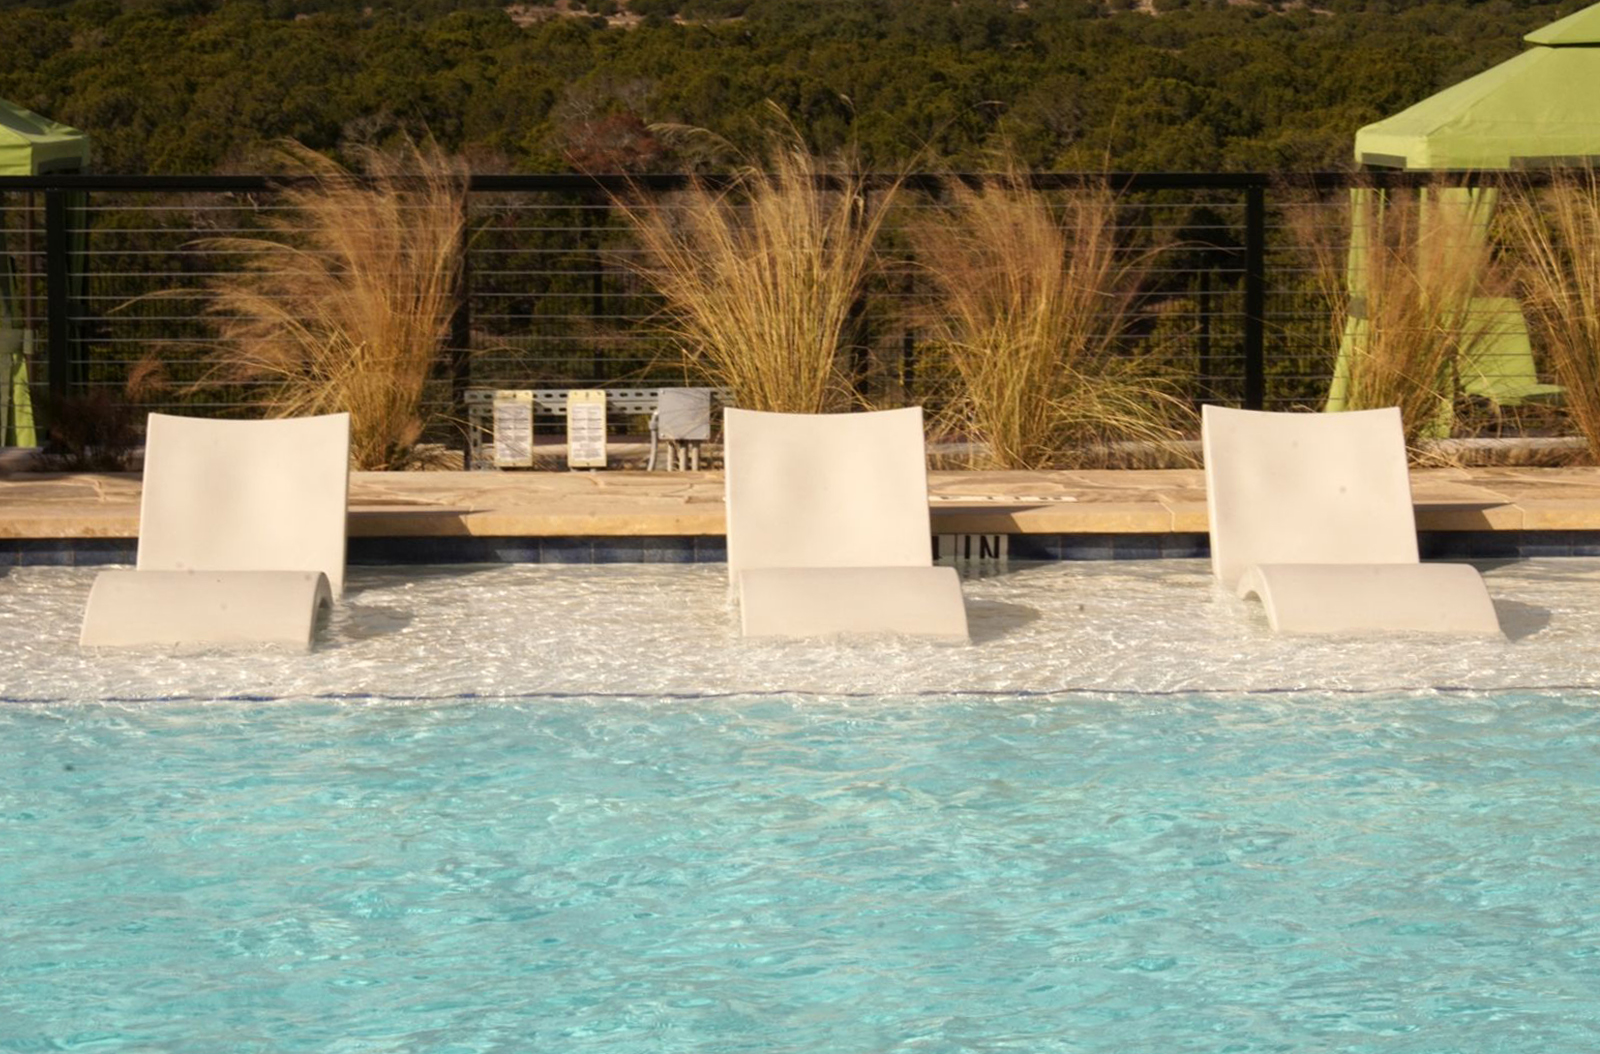 sweetwater hoa pool chairs